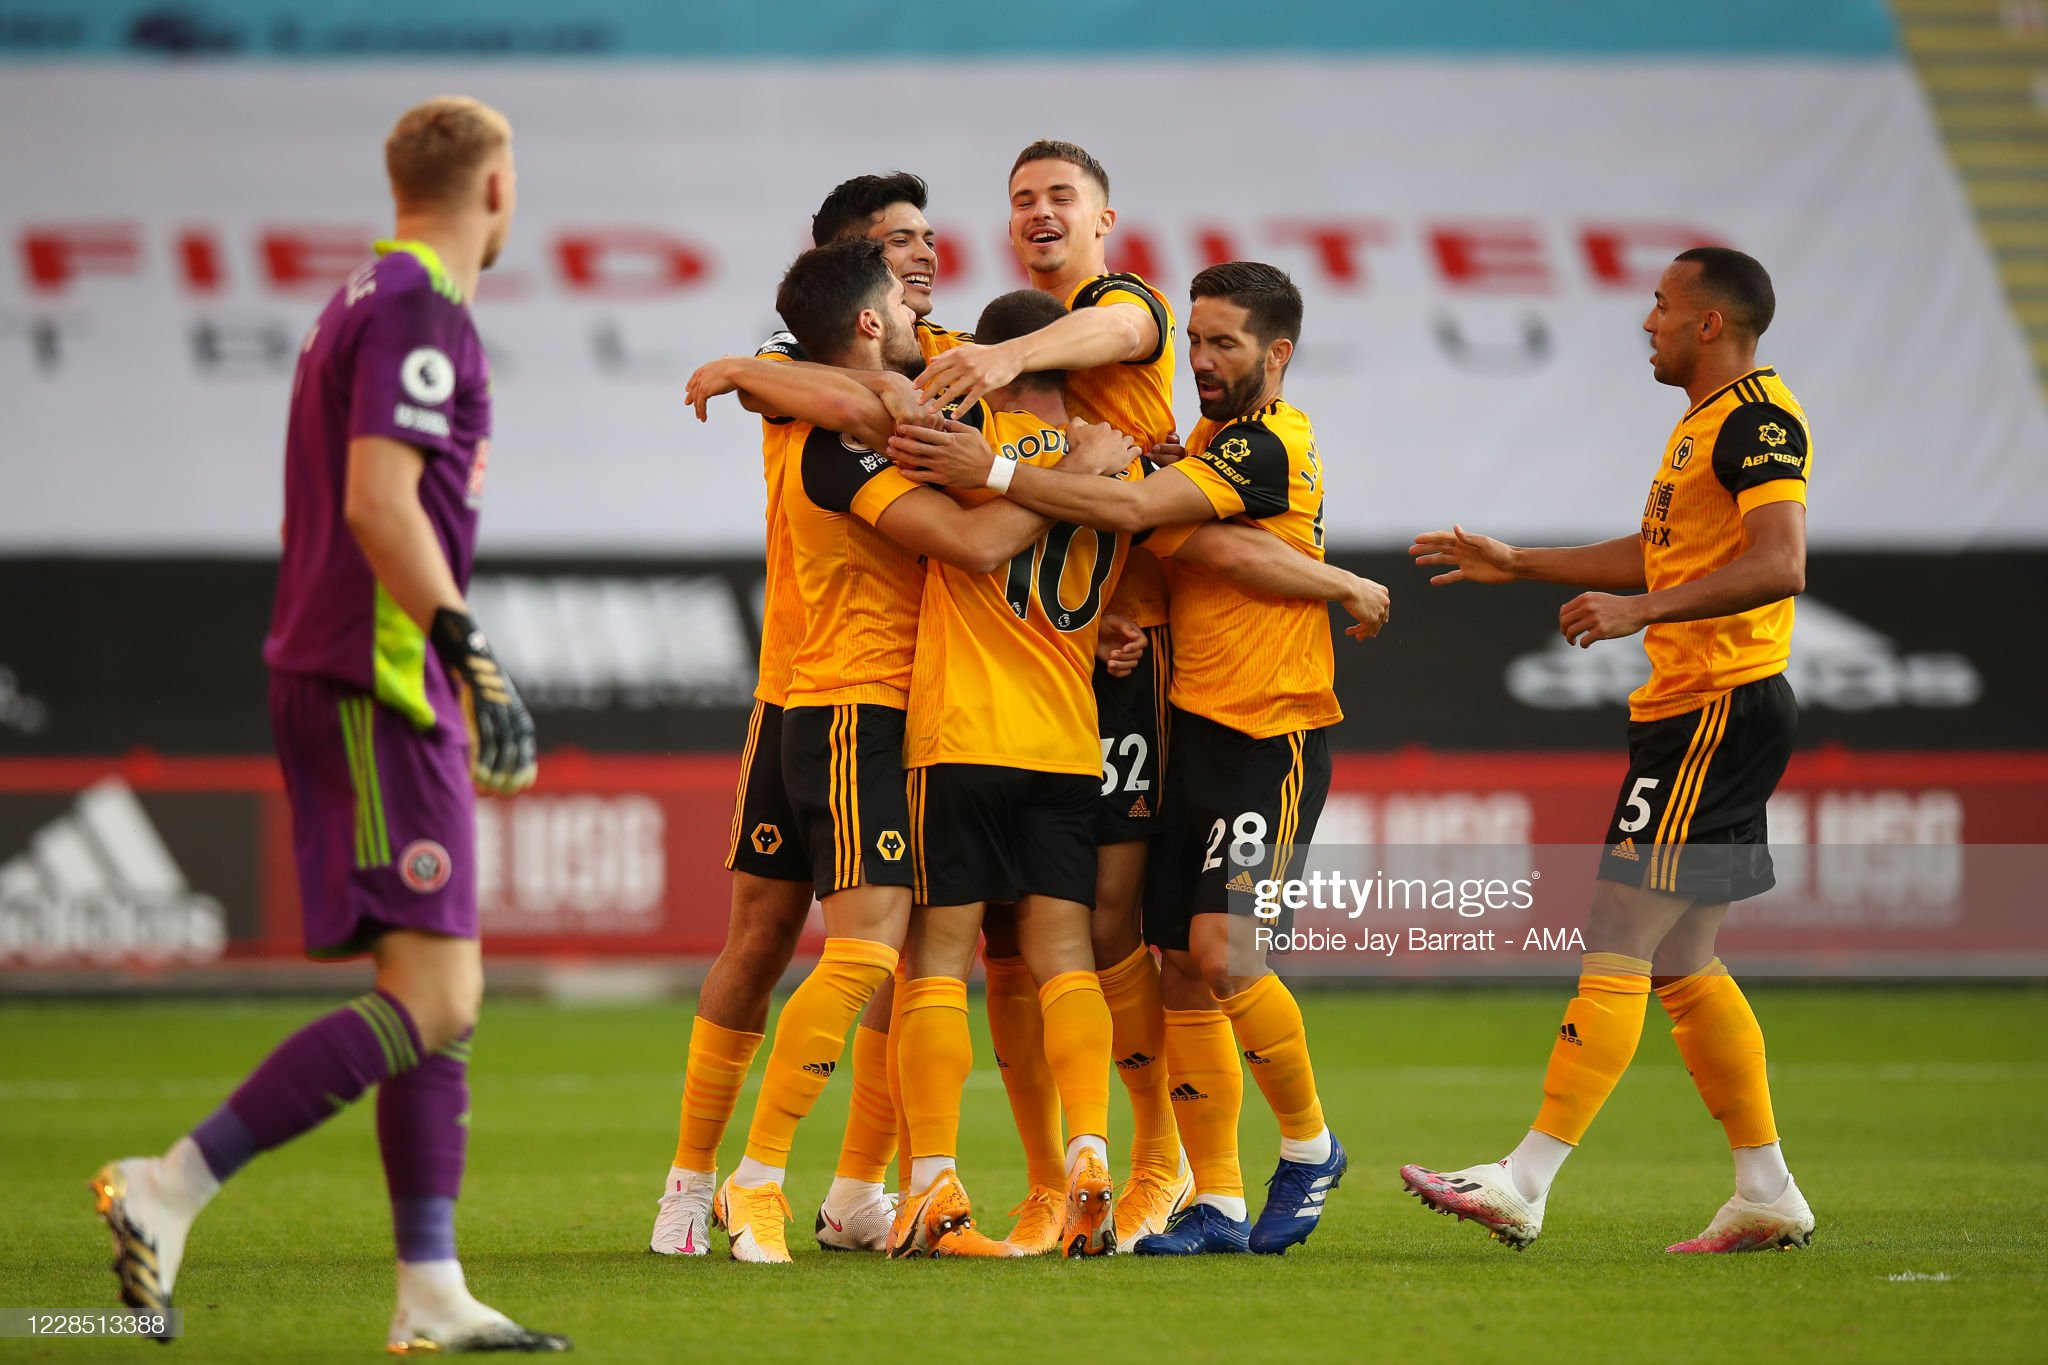 Wolves & Chelsea get off to strong Premier League start